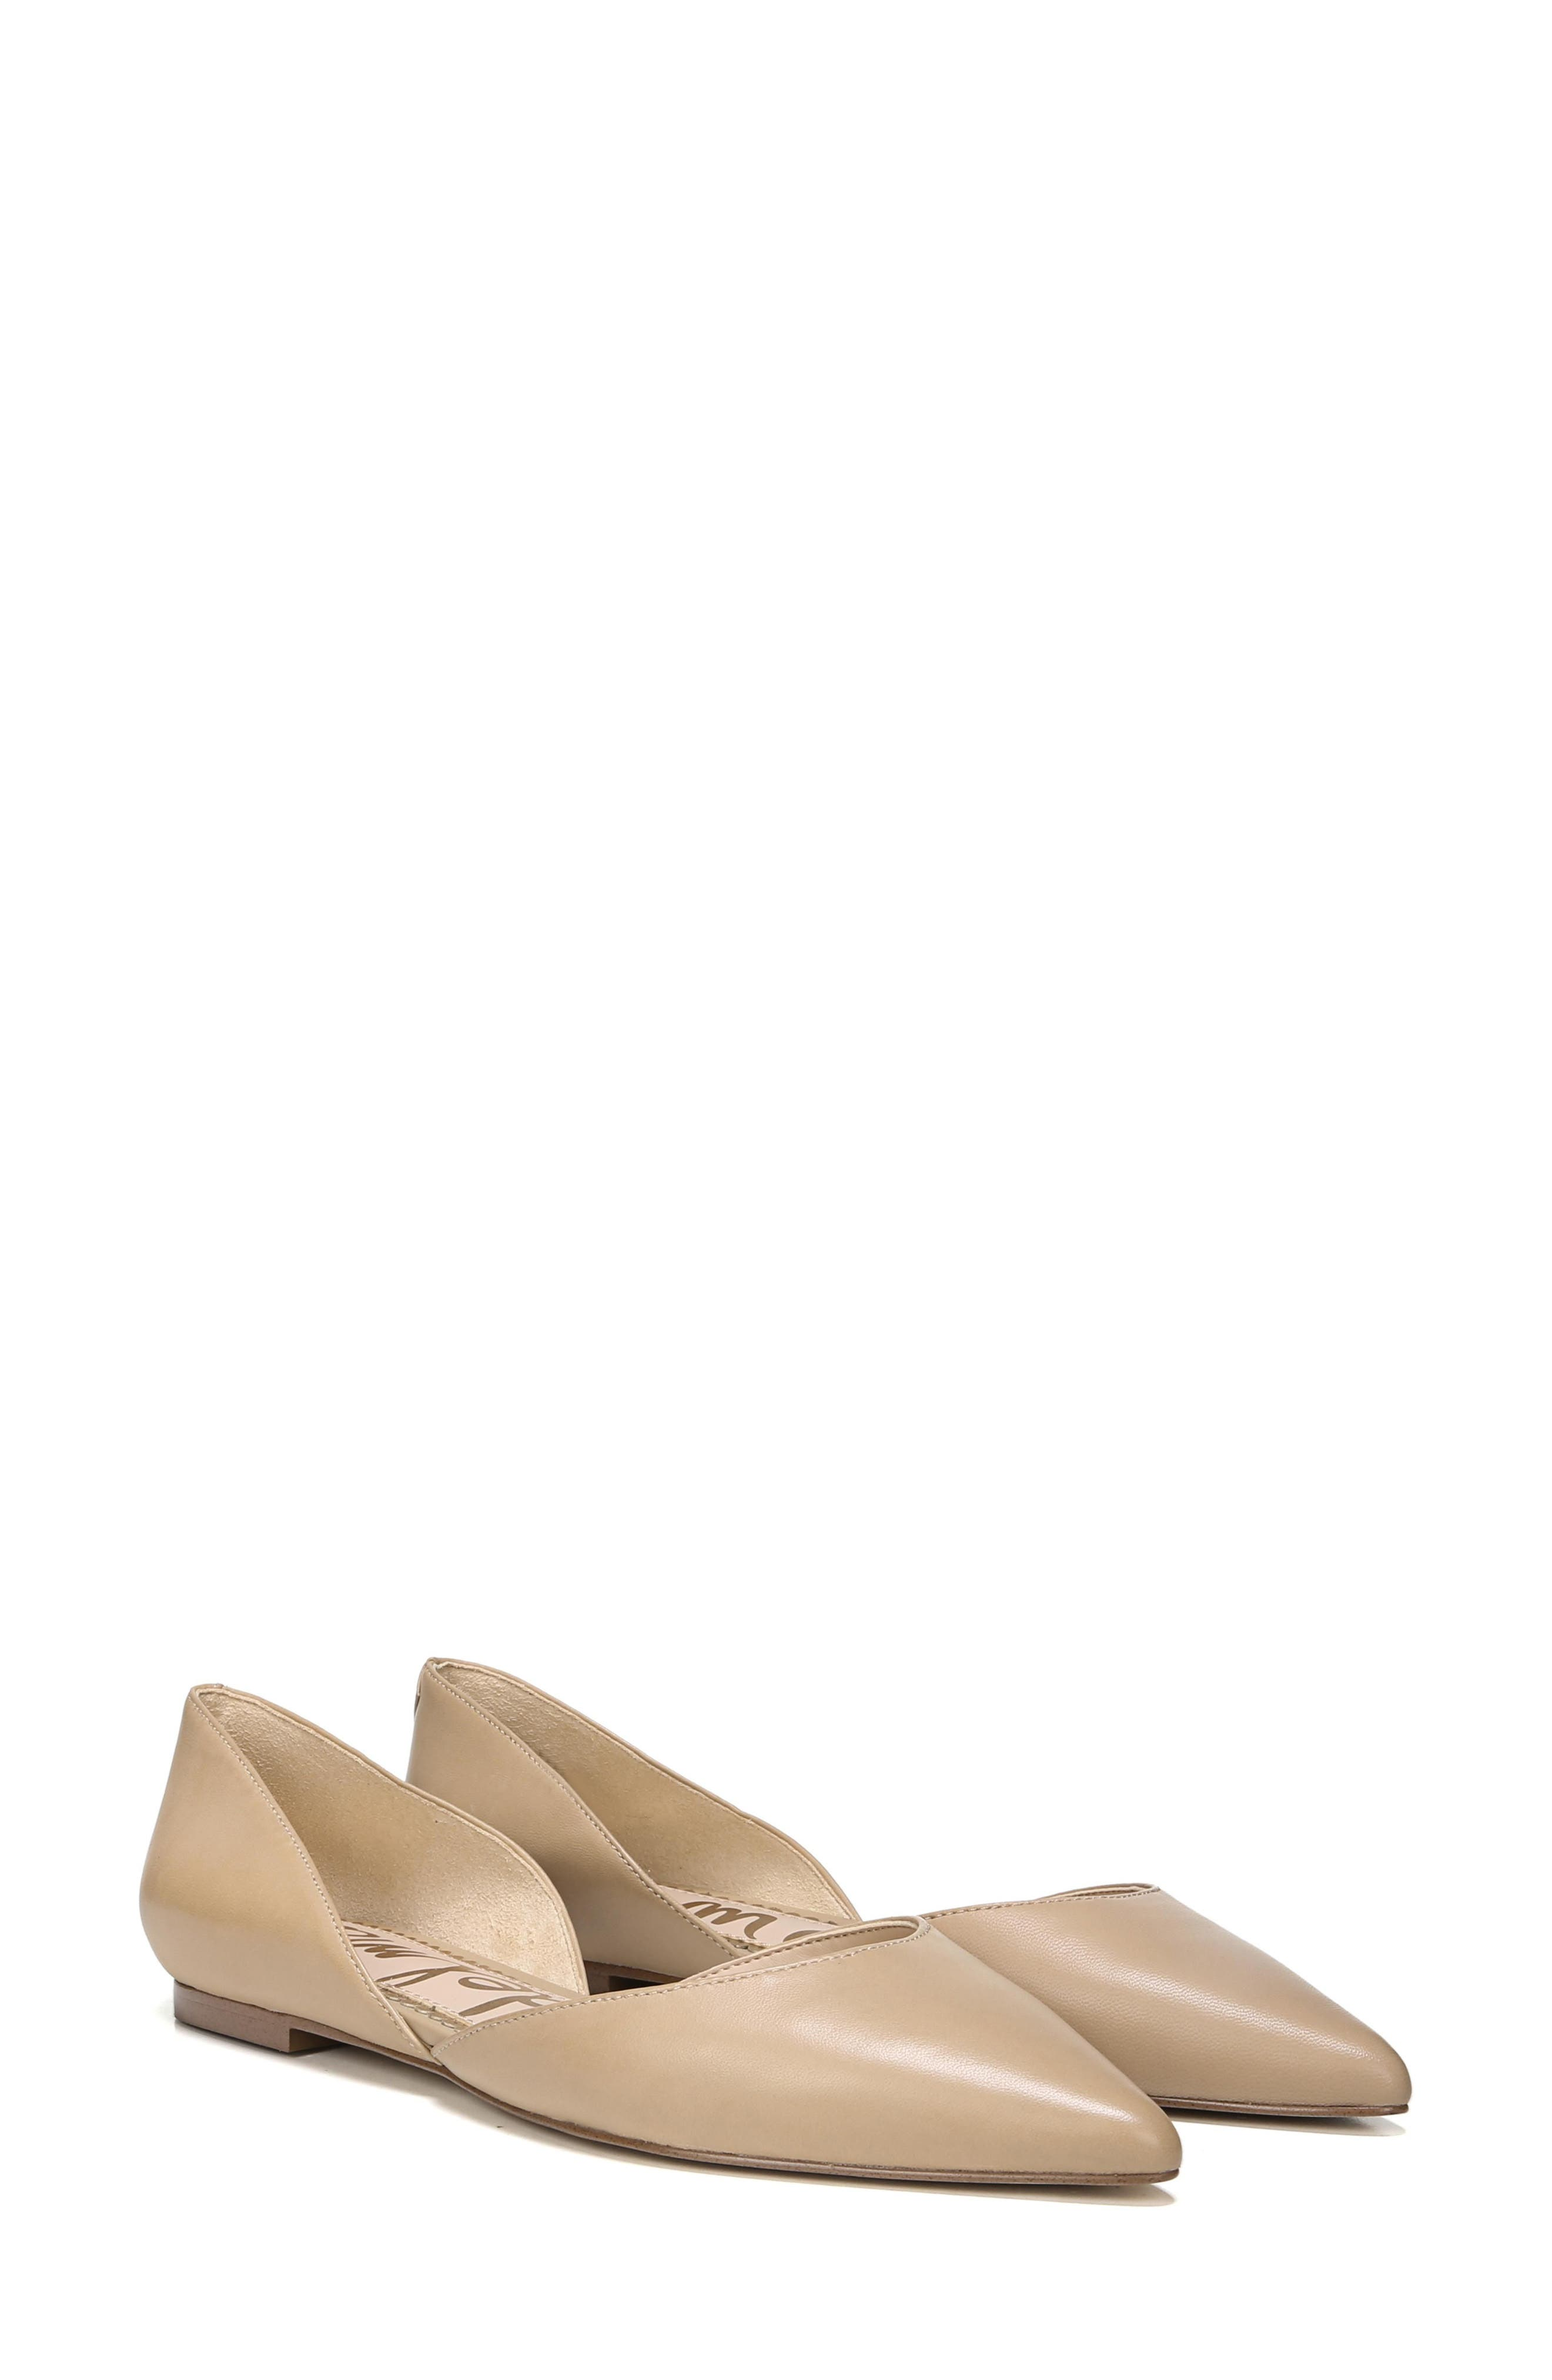 SAM EDELMAN, Rodney Pointy Toe d'Orsay Flat, Alternate thumbnail 8, color, CLASSIC NUDE LEATHER